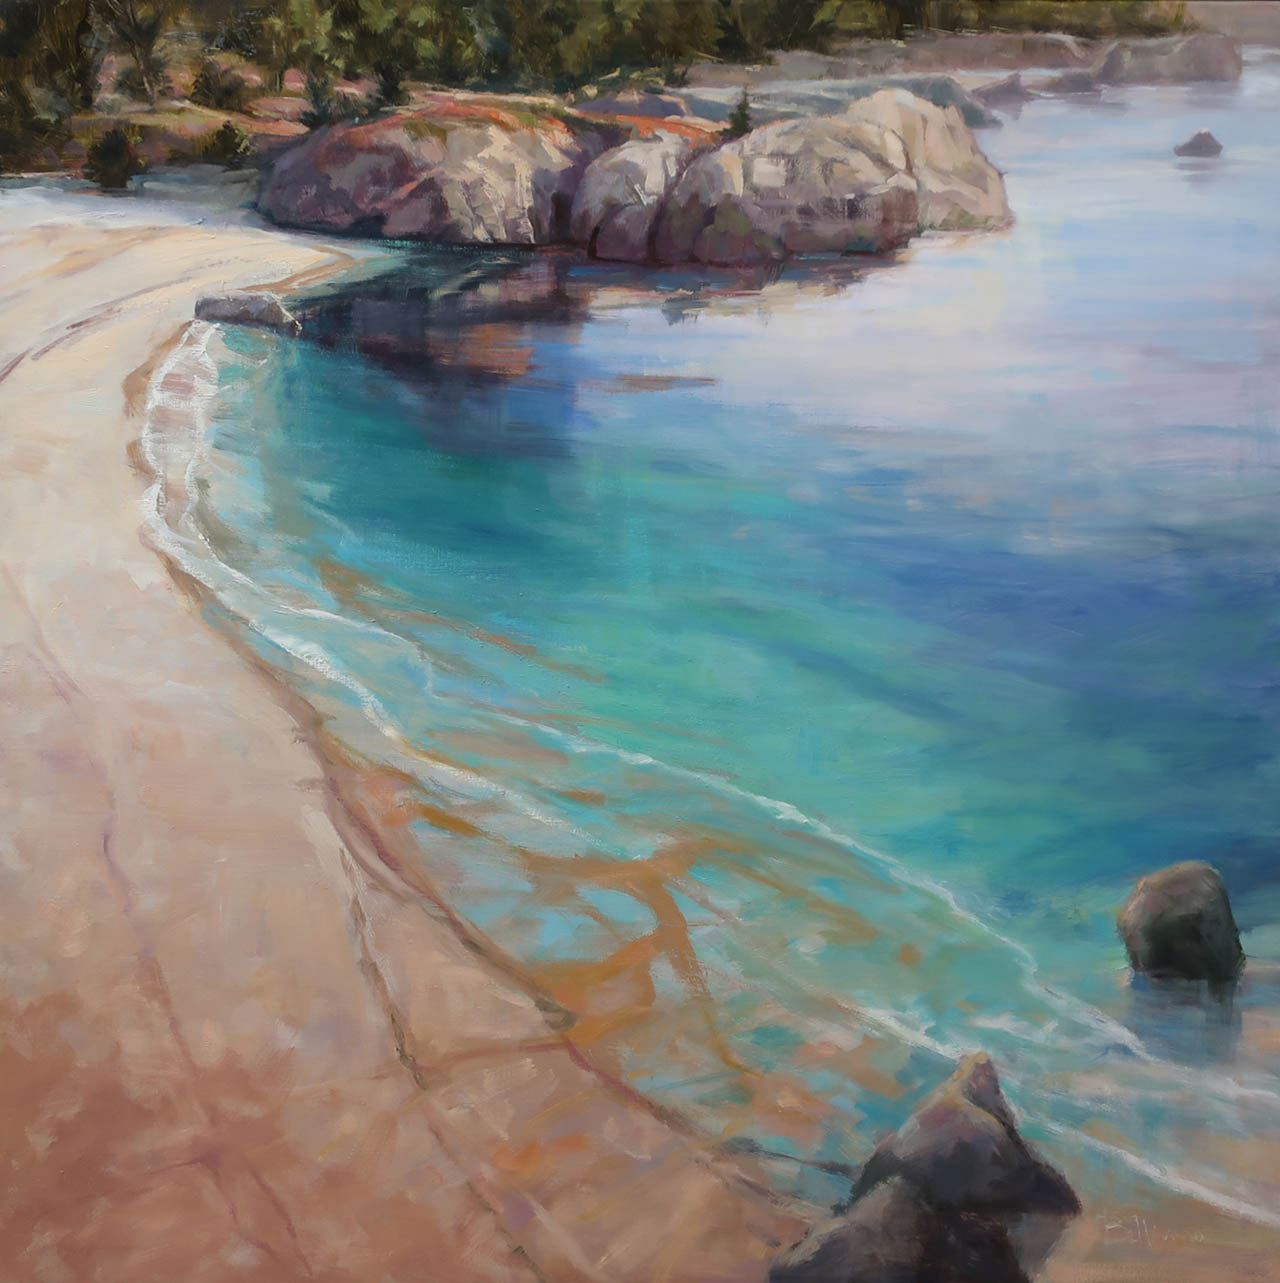 Gibson Beach Revisited, by Carole Belliveau